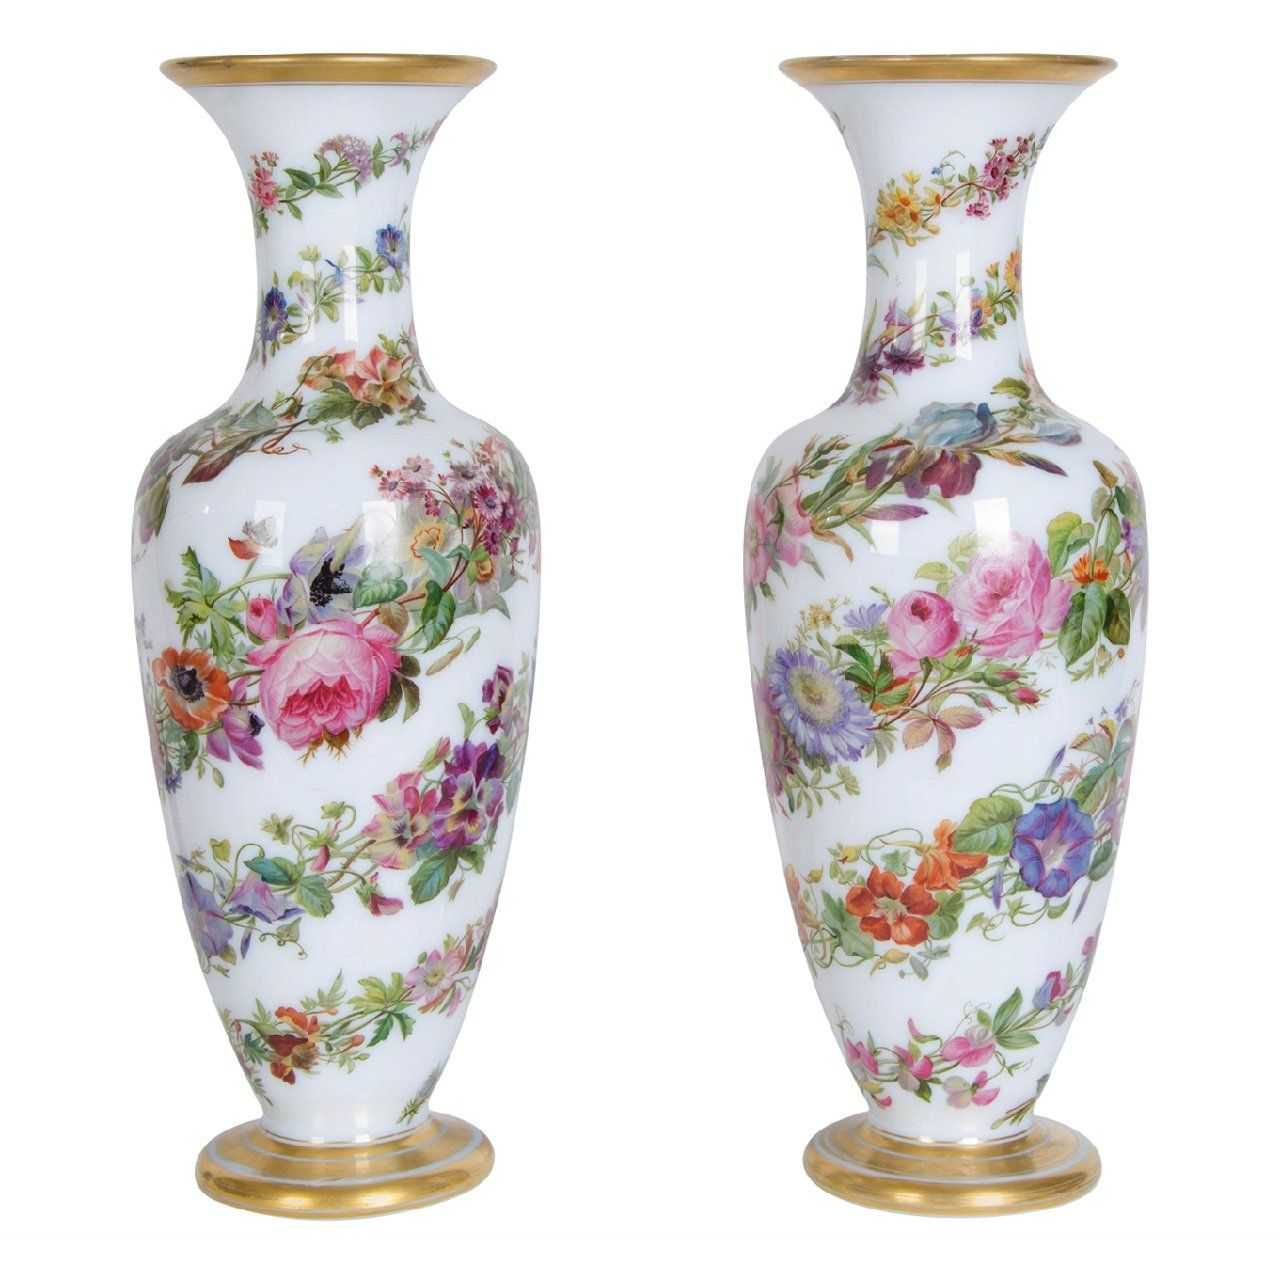 Pair Of Parcel Gilt Opaline Antique Glass Vases By Baccarat Mayfair Gallery